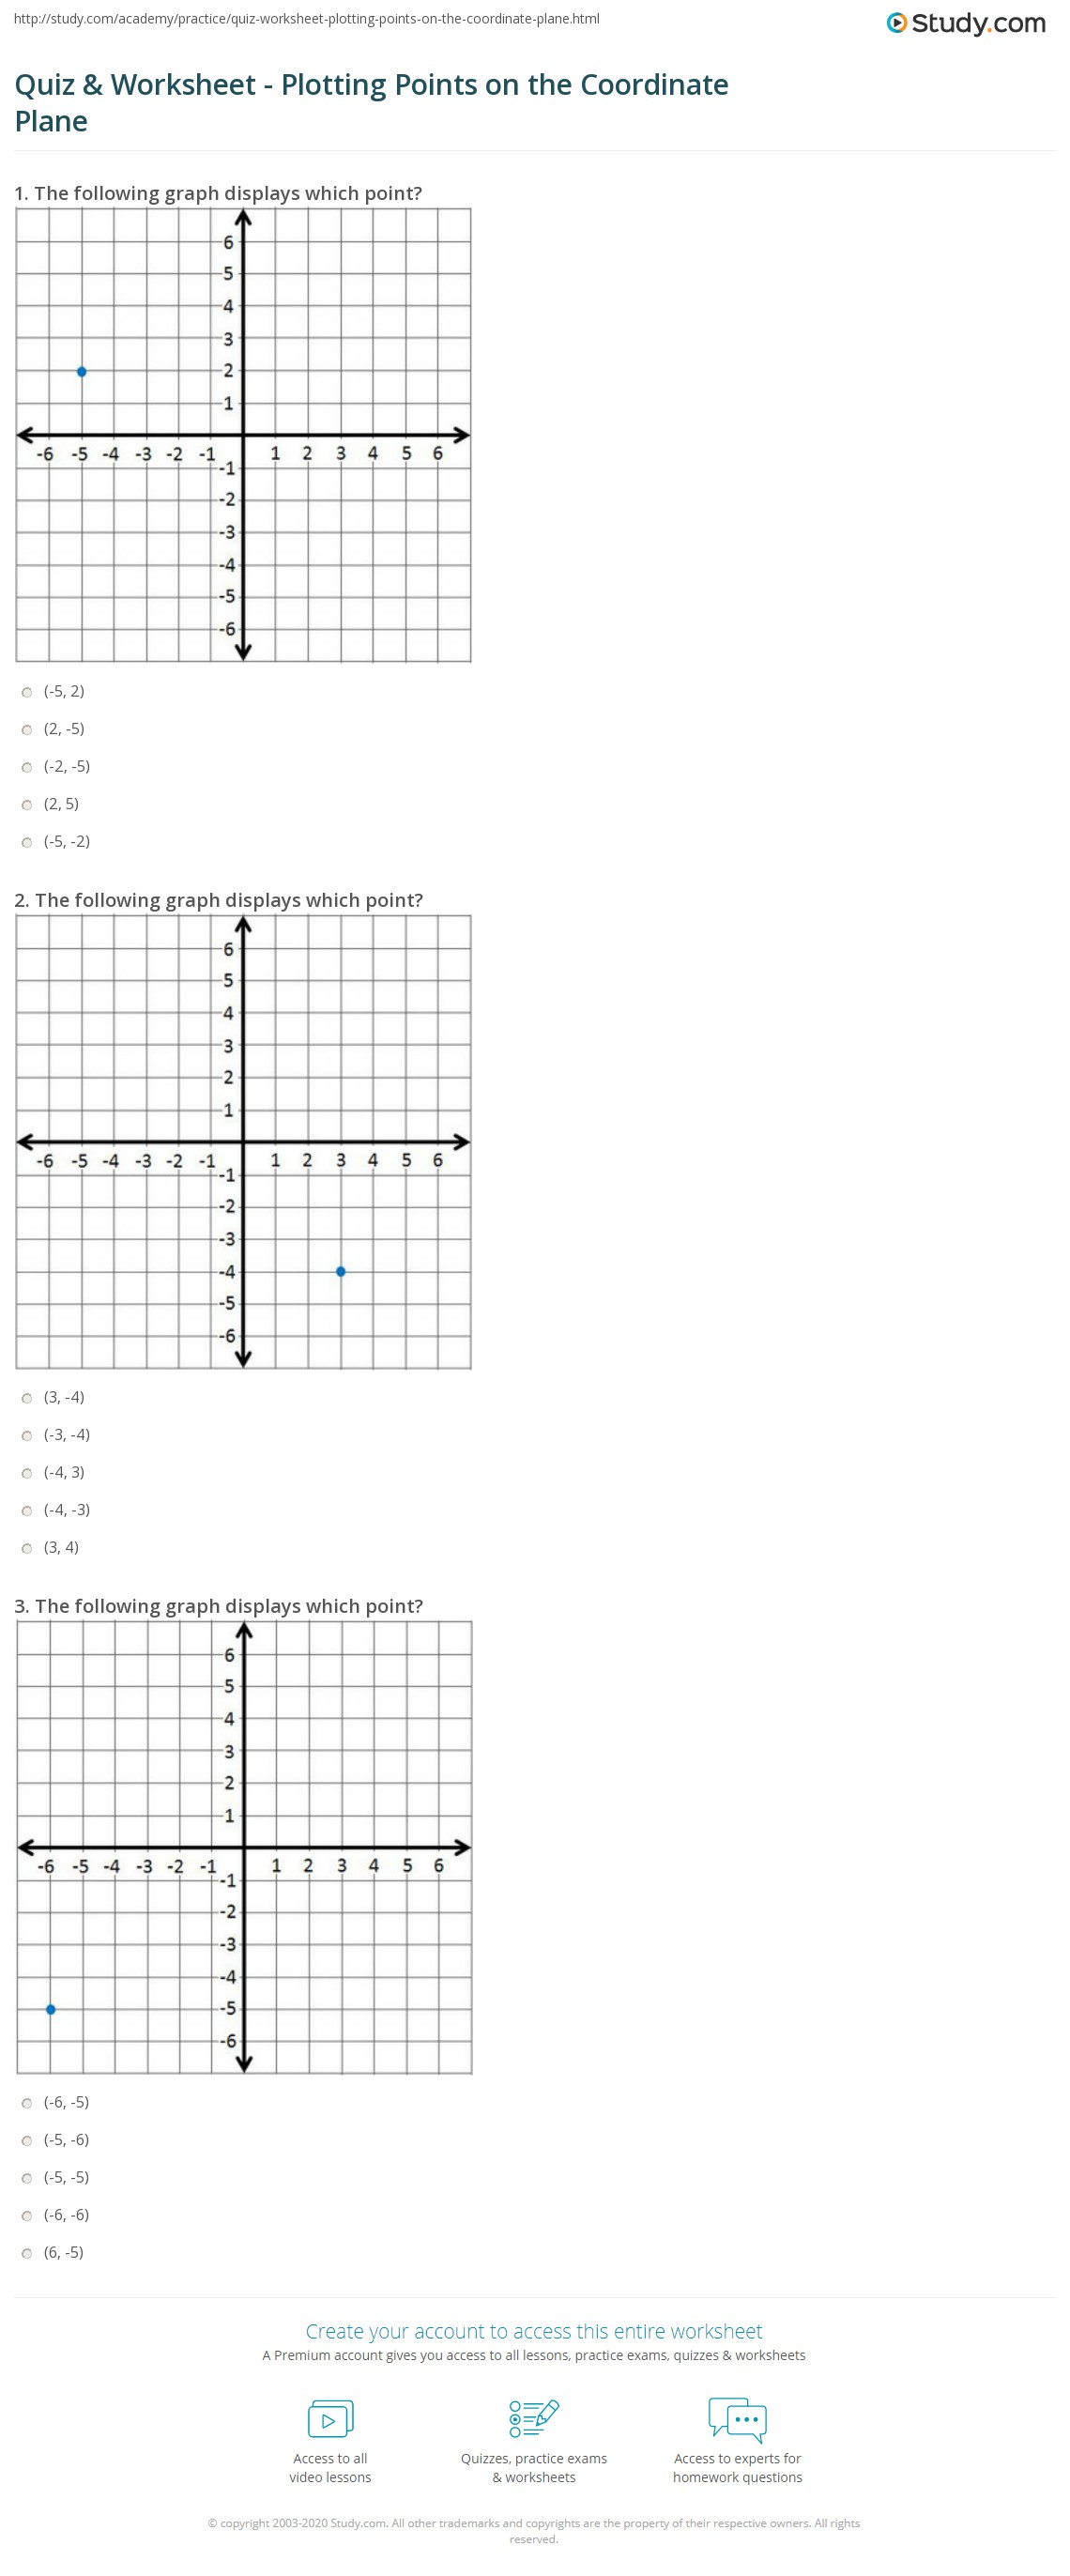 Quiz Worksheet Plotting Points on the Coordinate Plane – Graphing Points on a Coordinate Plane Worksheet